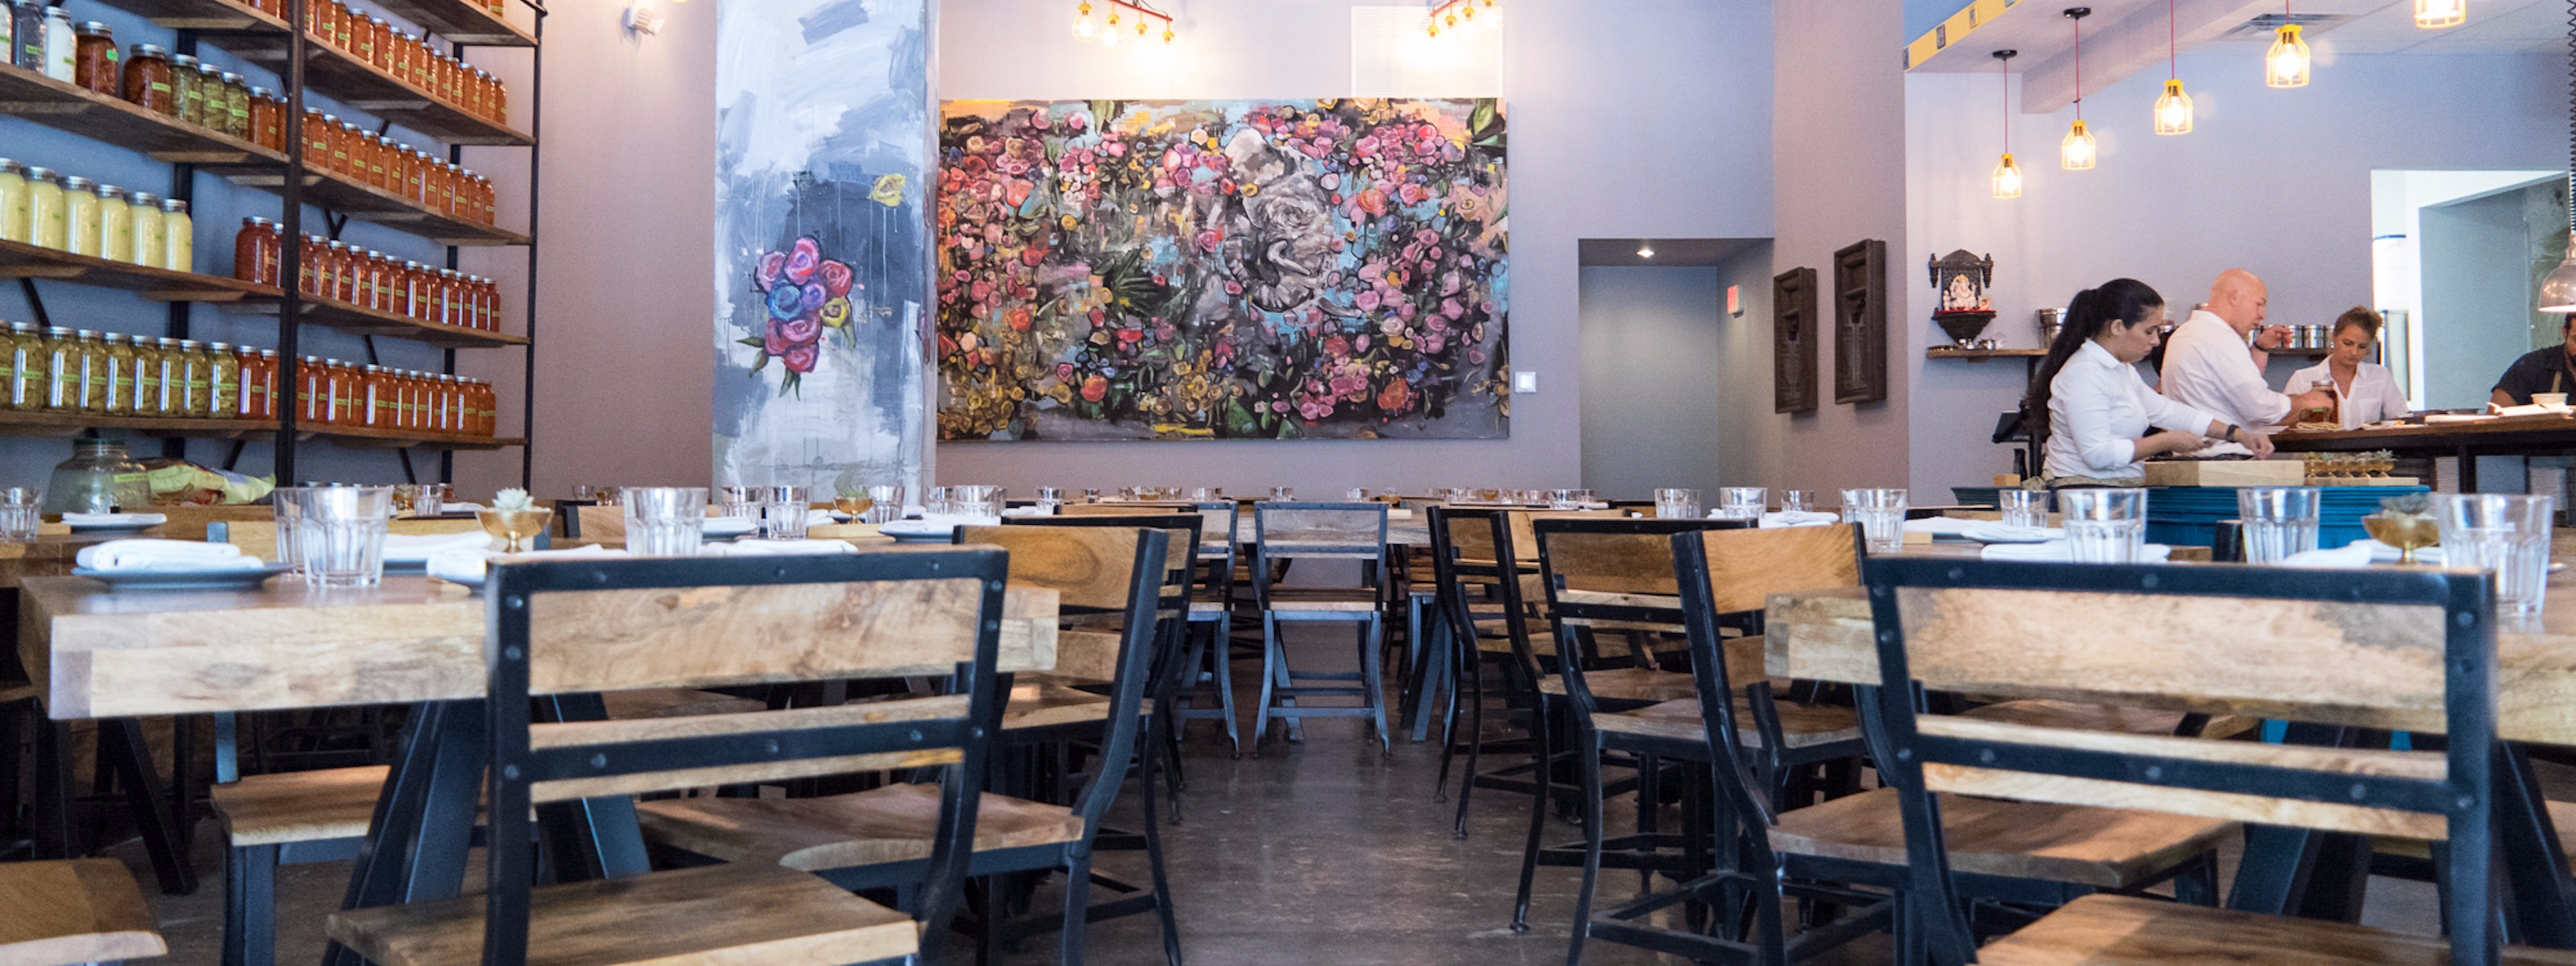 Home Cities & Ghee Indian Kitchen - Design District - Miami - The Infatuation